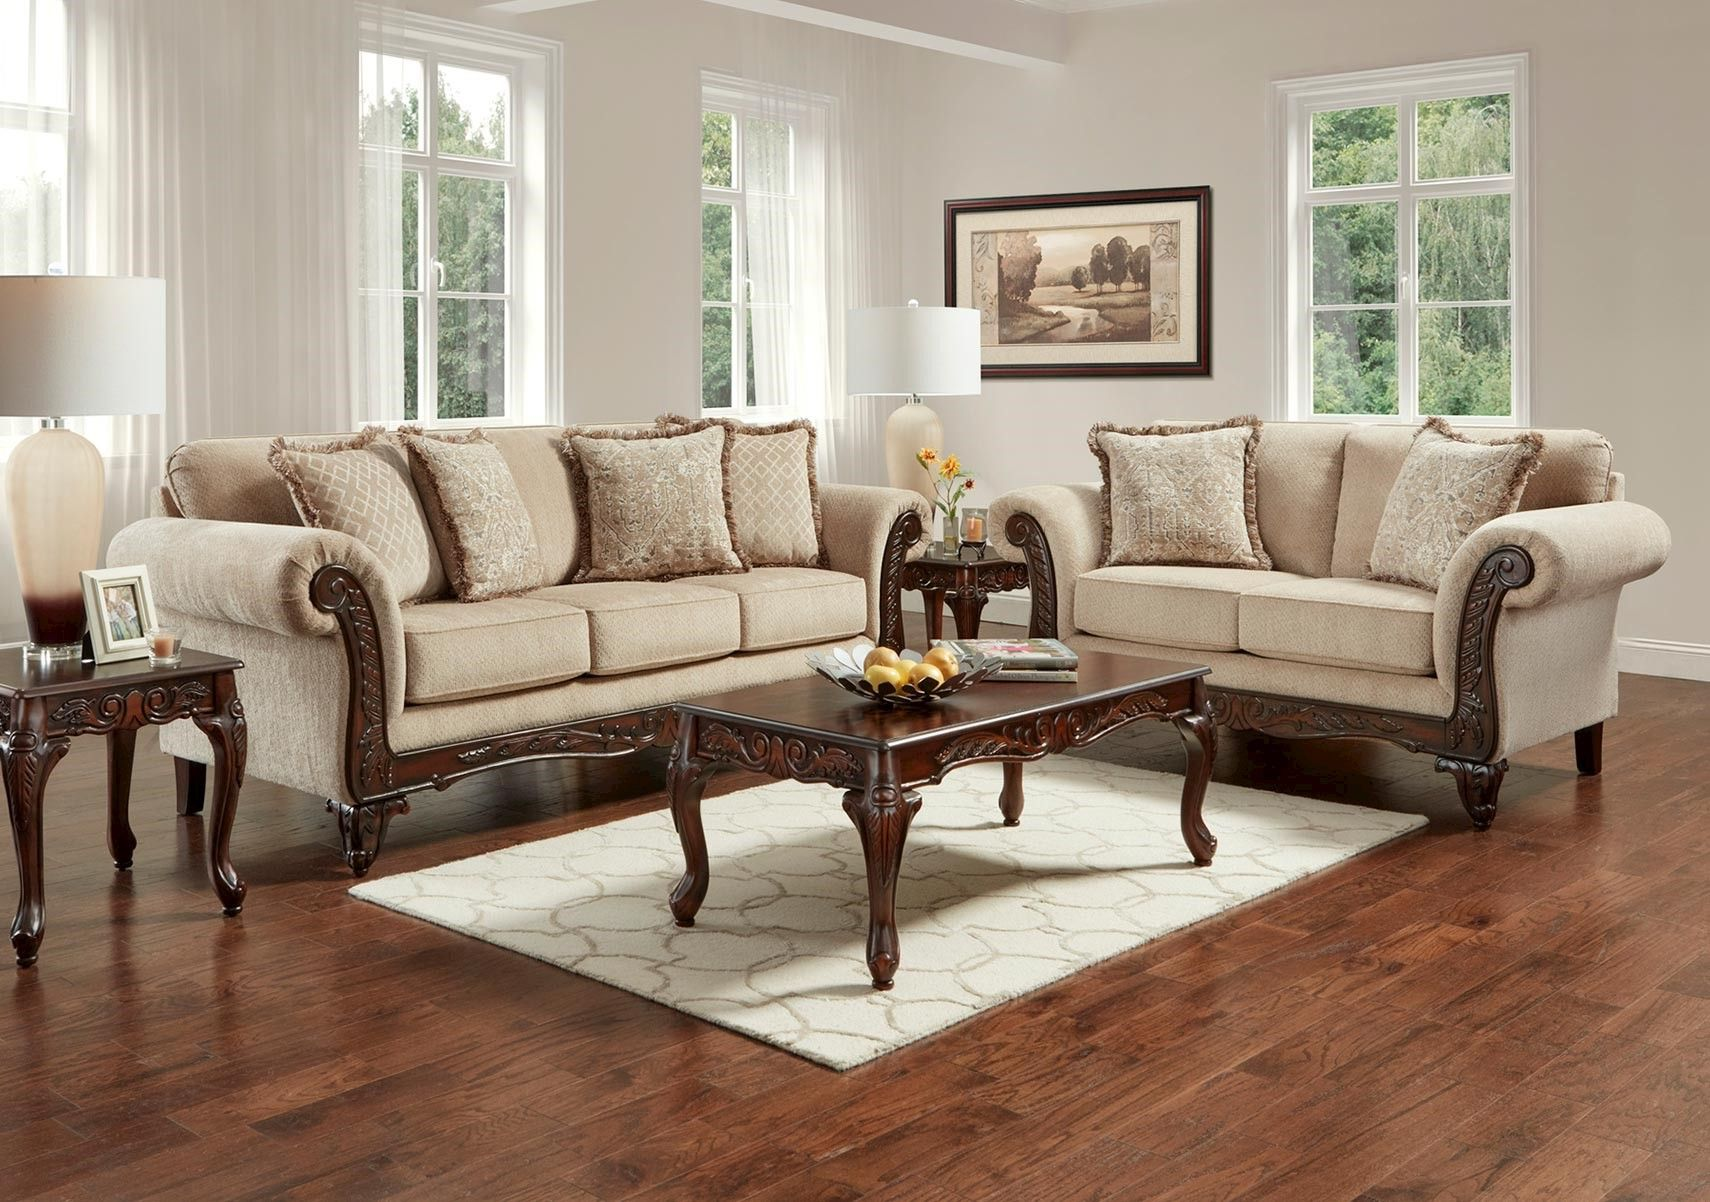 Lacks Emory 2 Pc Living Room Set With Images Living Room